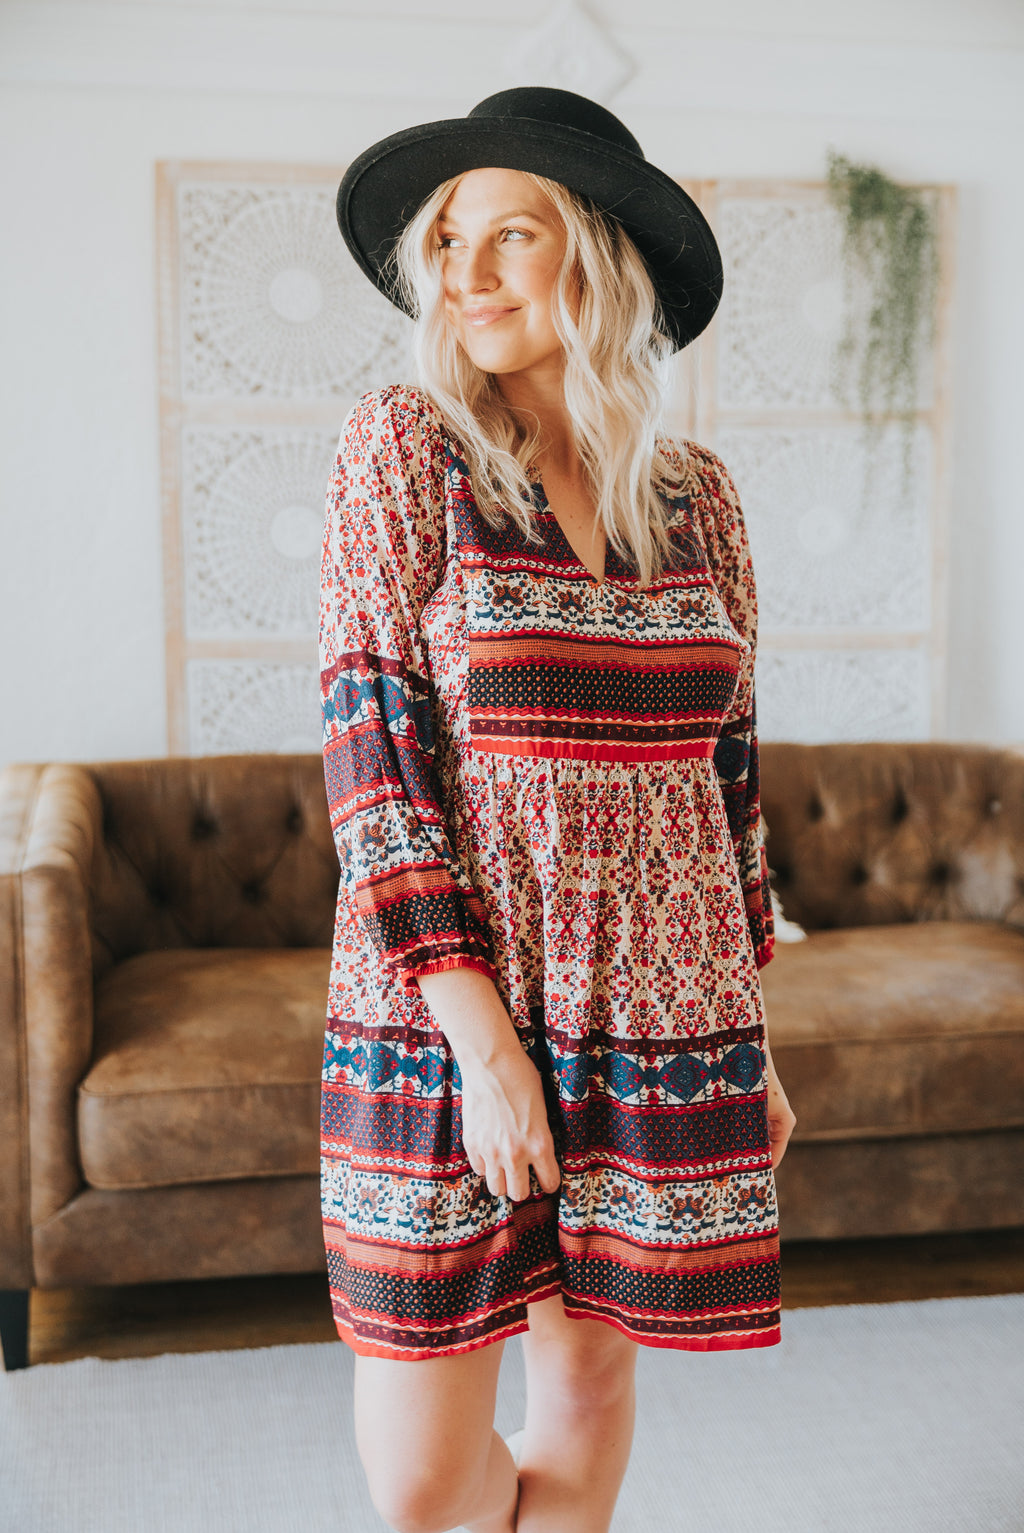 The Voyage Mixed Print Dress in Red